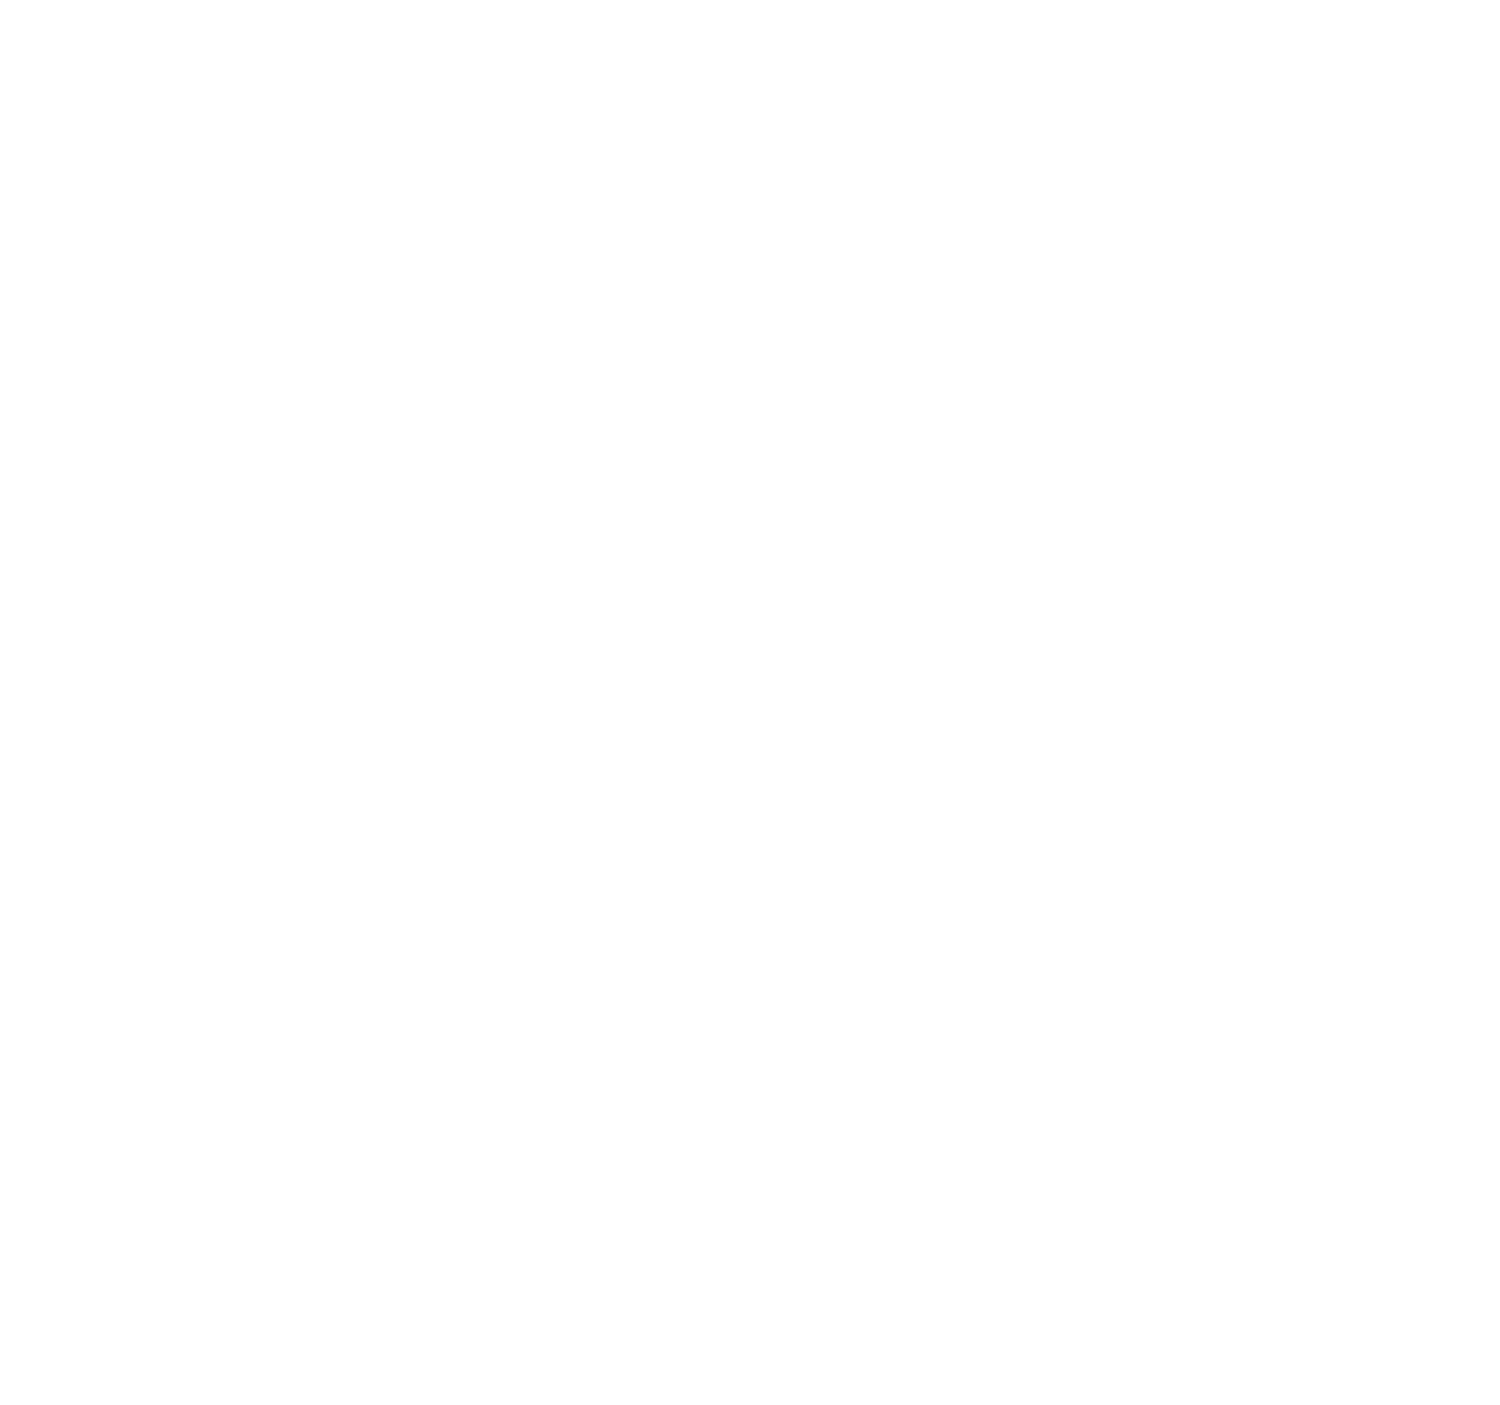 BEST DAY PROJECT